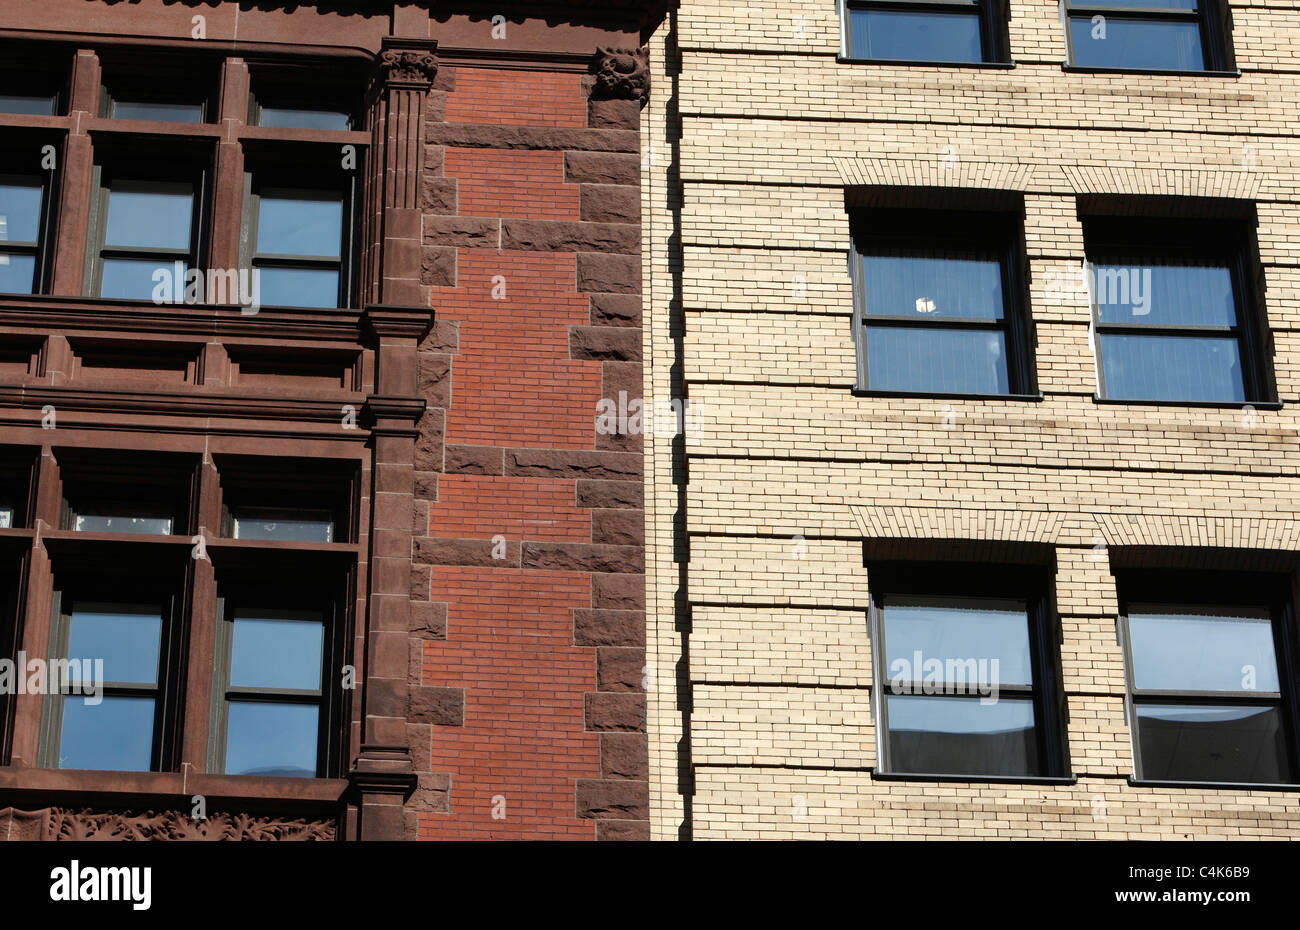 two types of brick buildings side by side in Boston - Stock Image